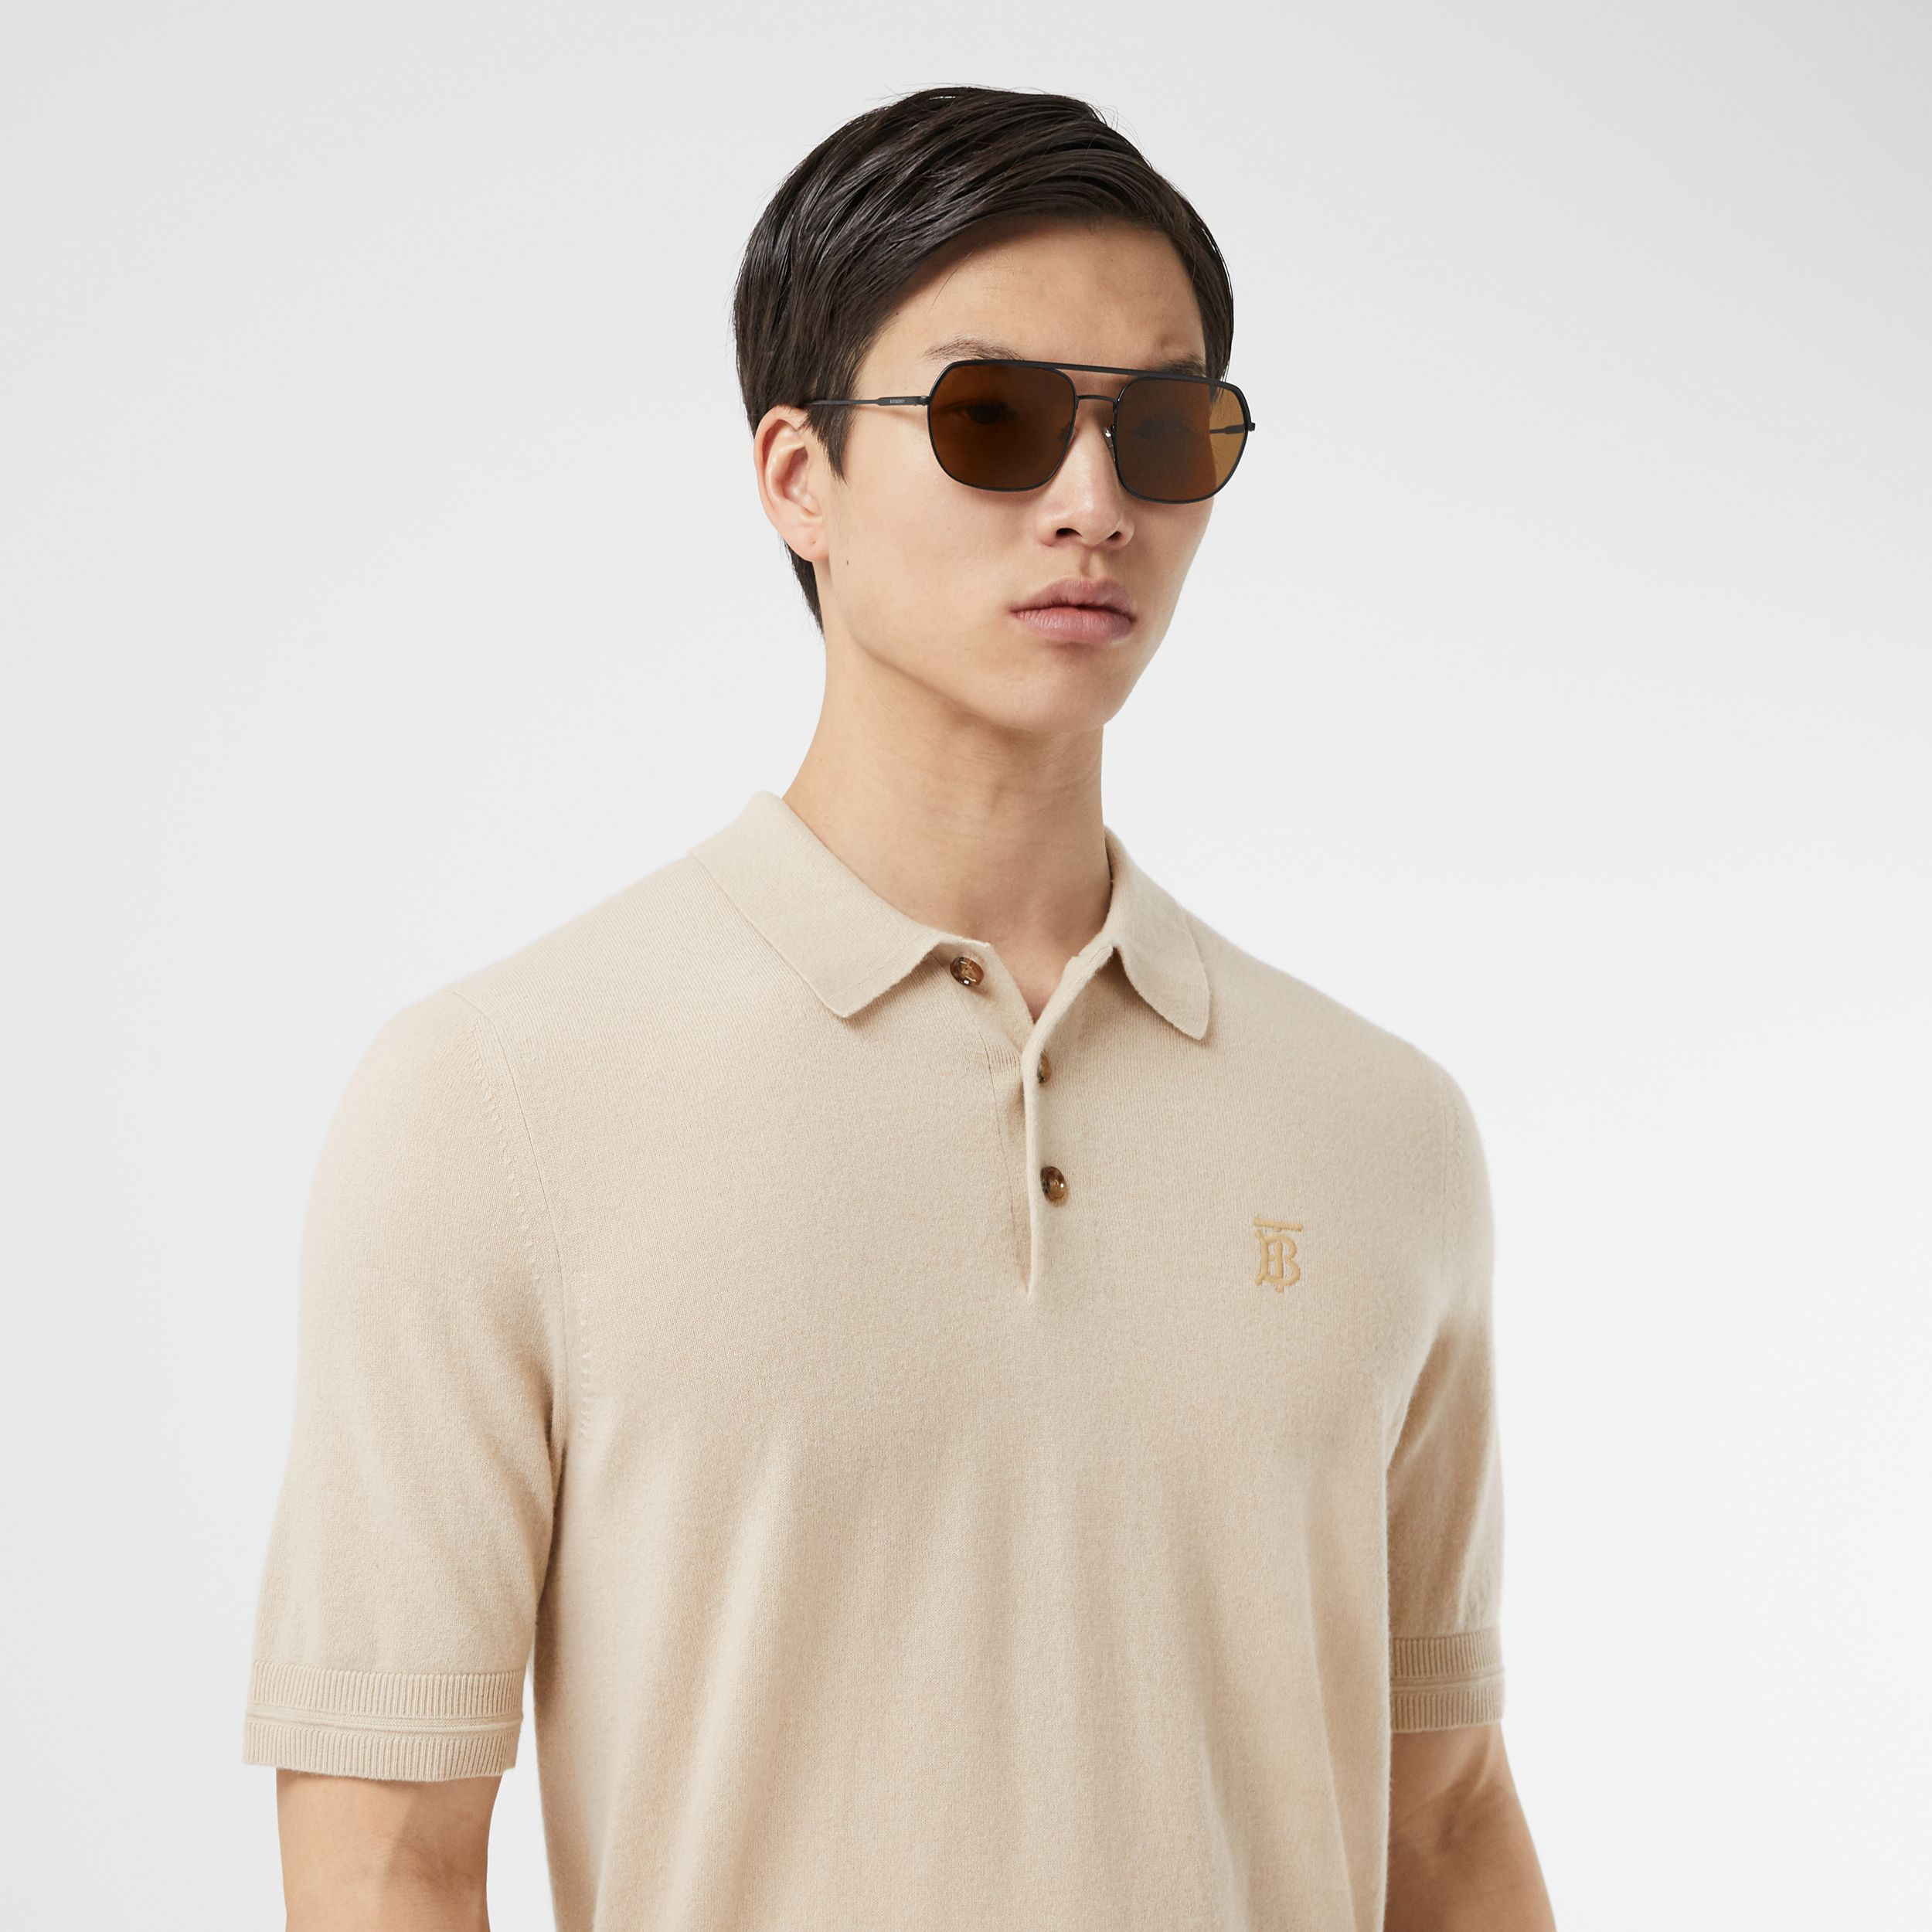 Monogram Motif Cashmere Polo Shirt in Soft Fawn - Men | Burberry - 2